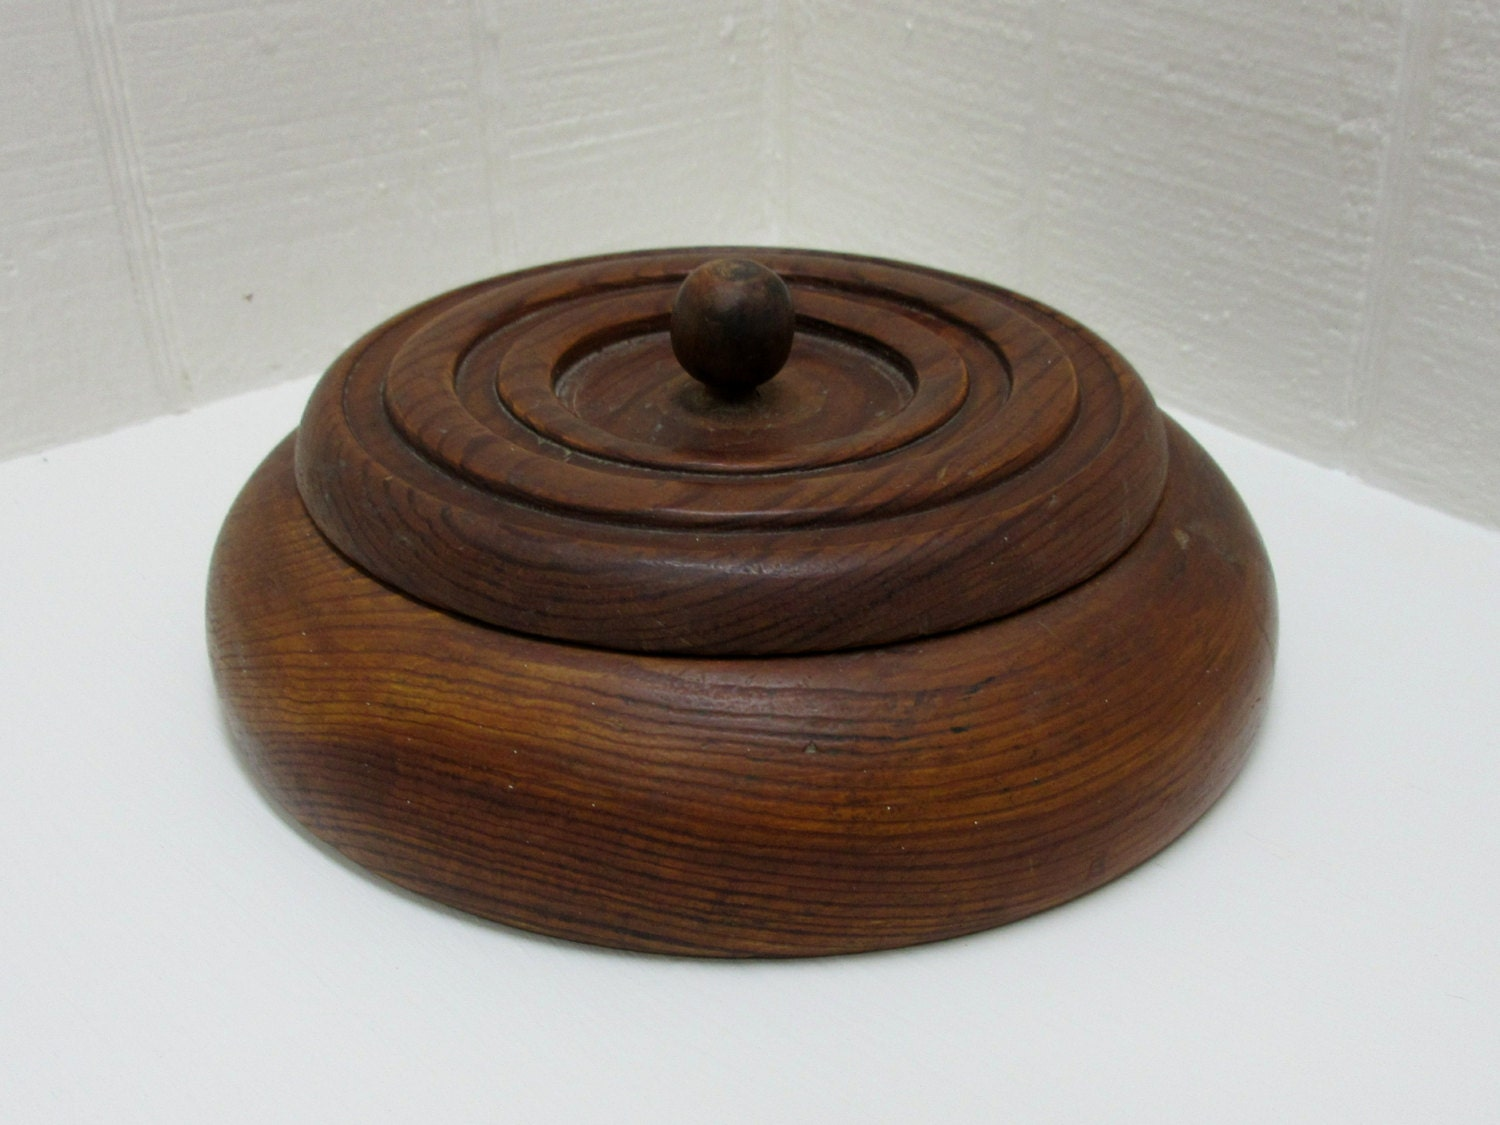 Vintage notion box wooden sewing box round wooden box for Circular wooden box